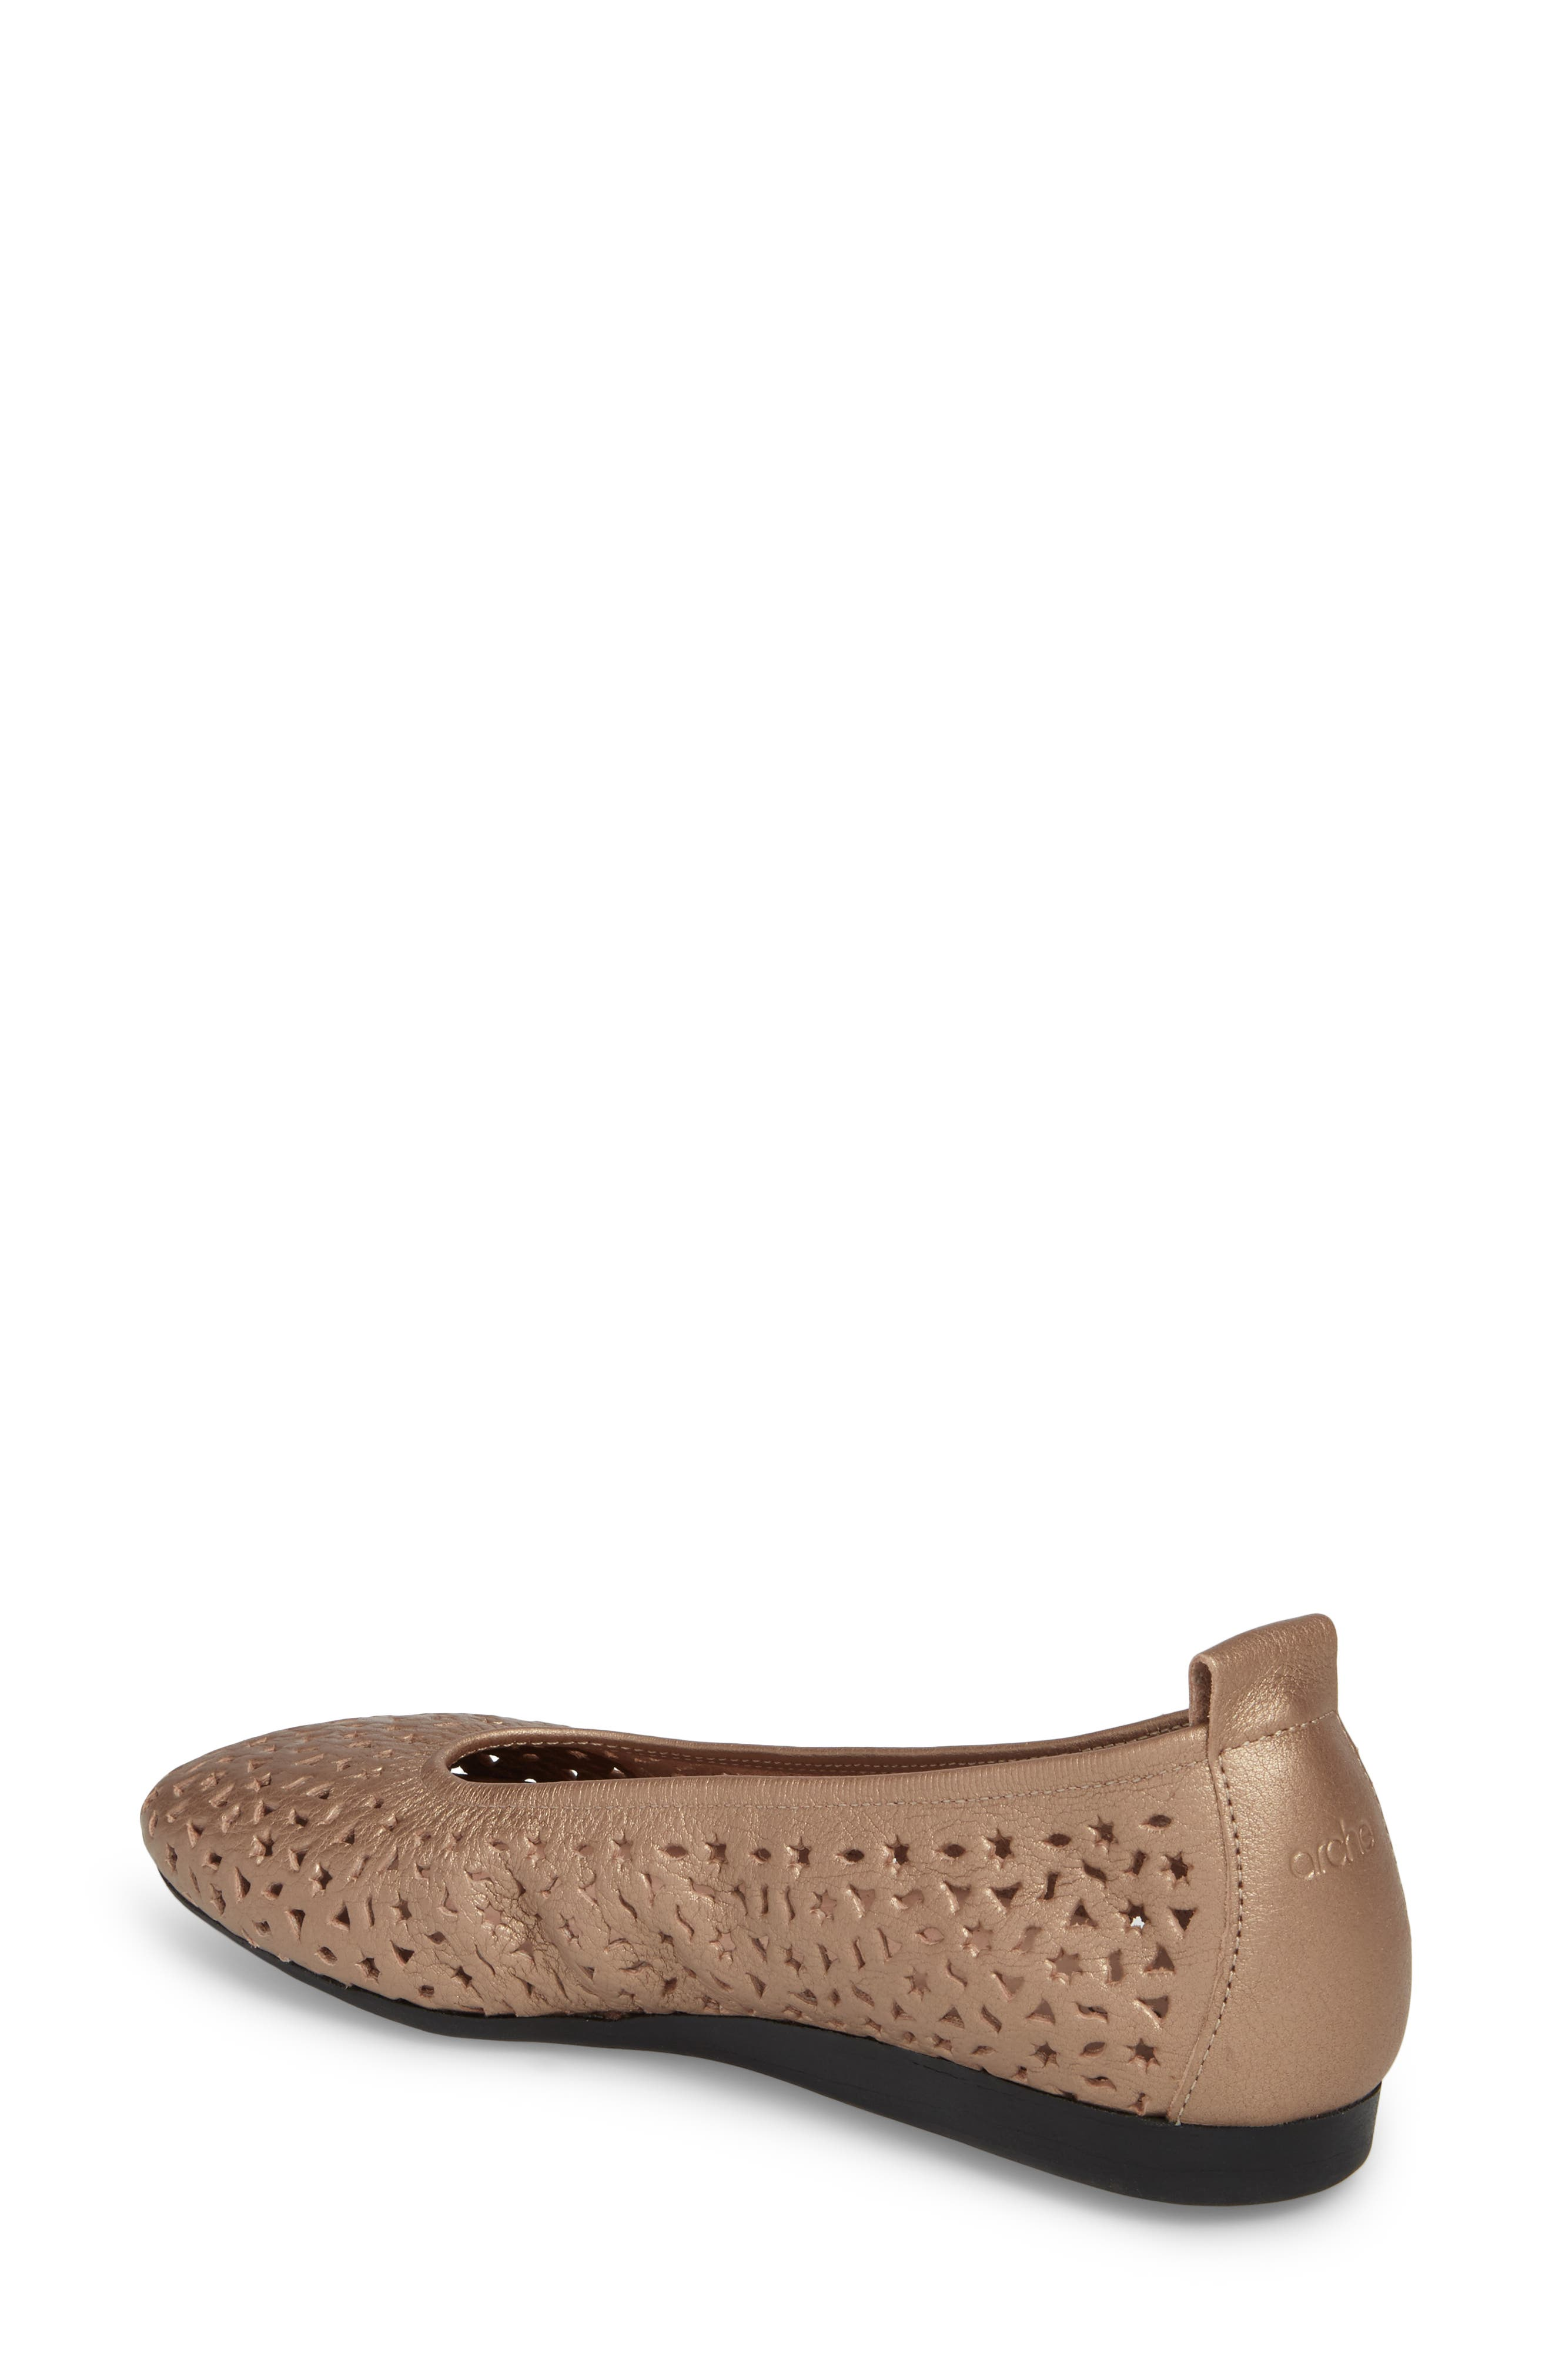 'Lilly' Flat,                             Alternate thumbnail 2, color,                             Antico/ Blush Leather